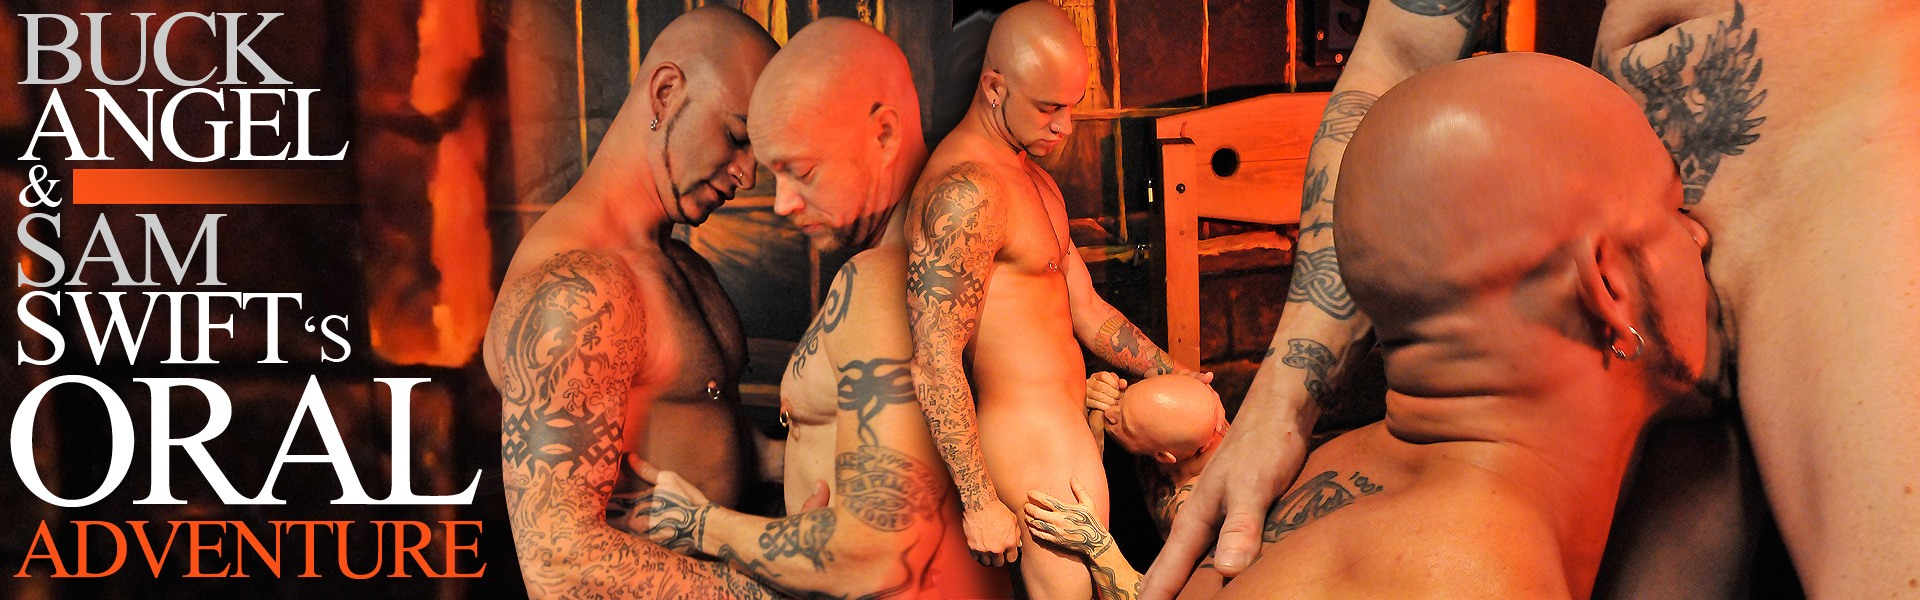 Buck Angel & Sam Swift's Oral Adventure